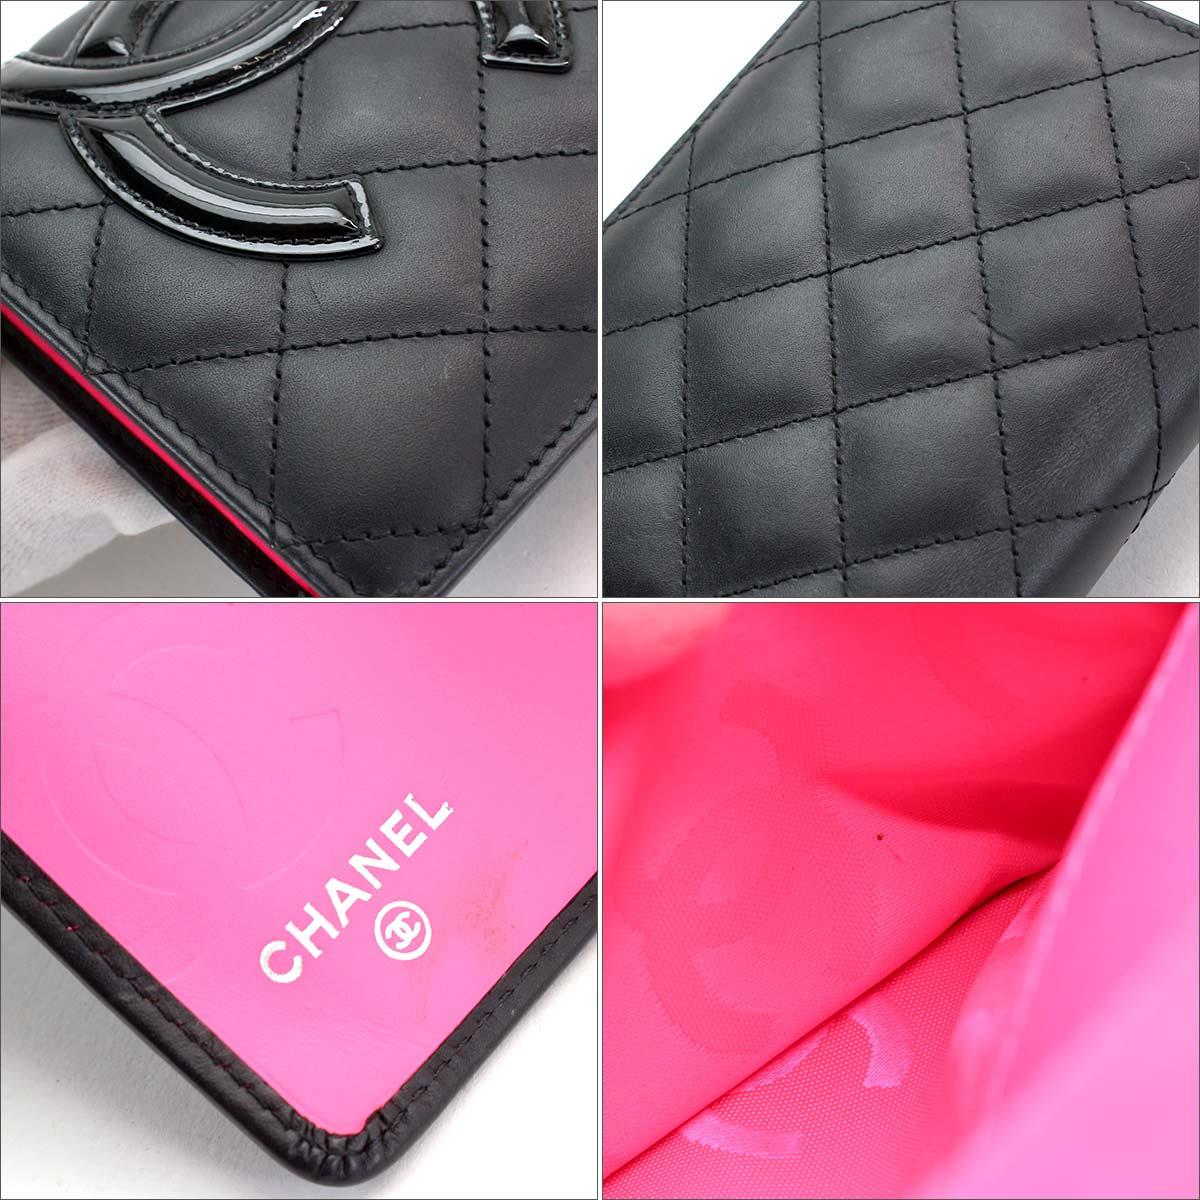 052655e4639a7a Chanel CHANEL Cambon line folio long wallet leather enamel black A26717